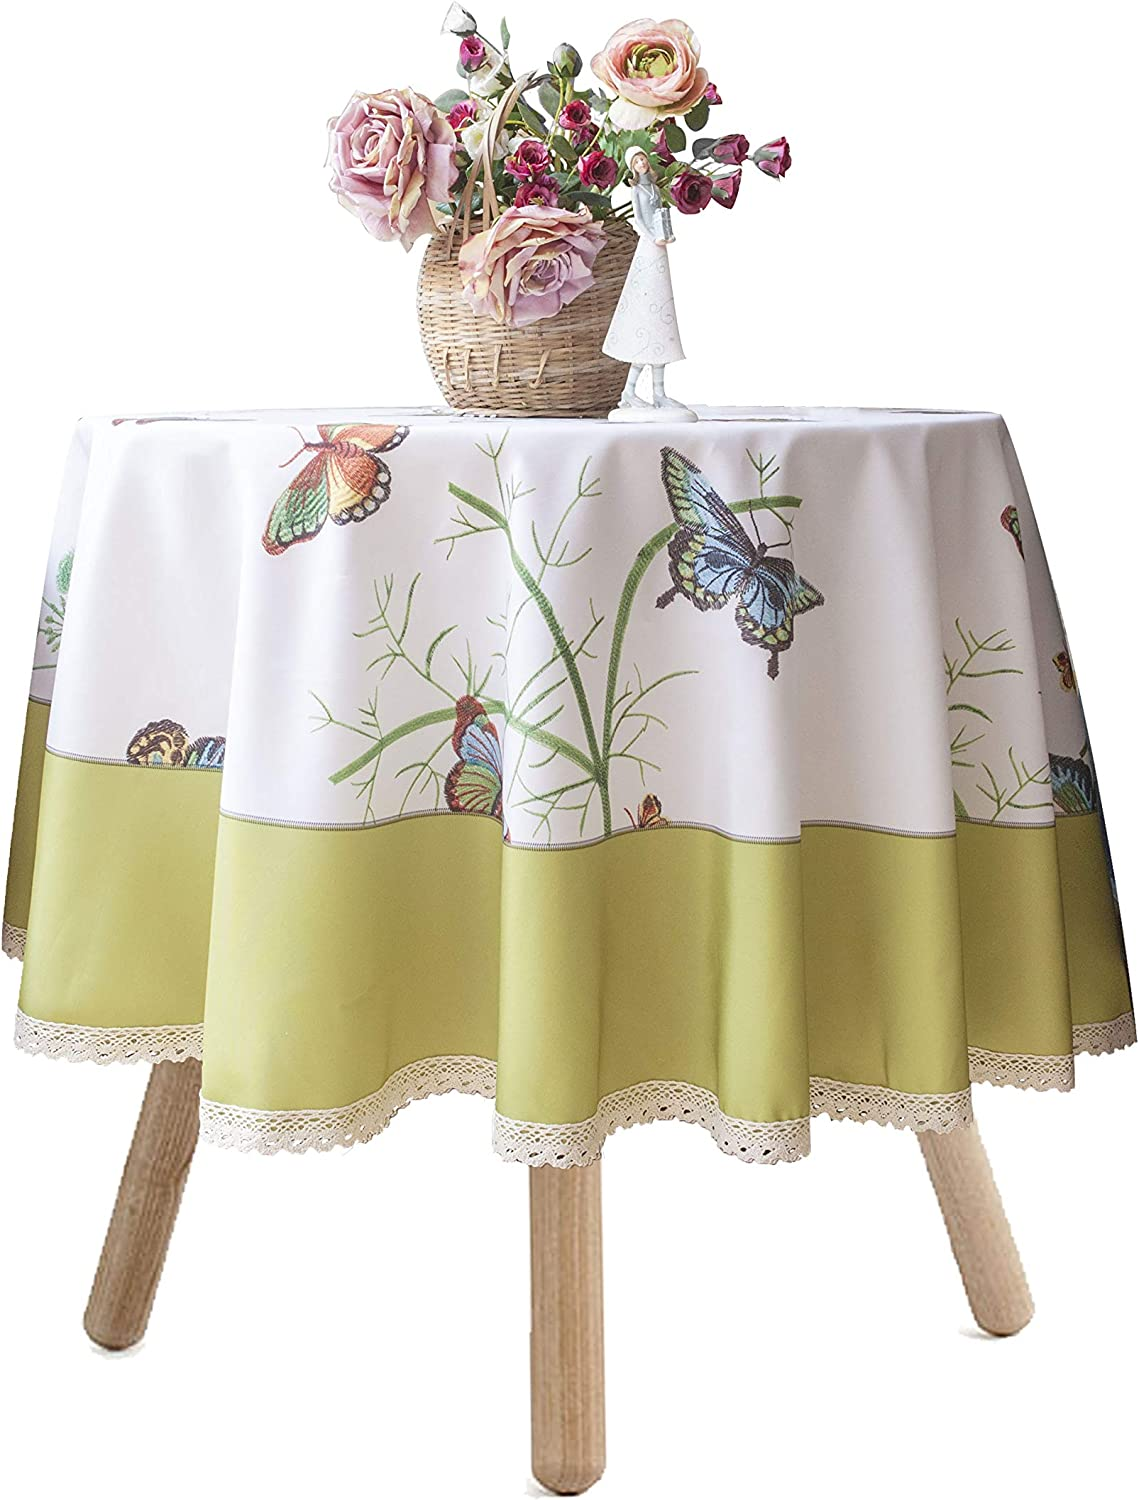 "In the Garden Flower Floral Butterfly Spring Party 60/"" Round Vinyl Tablecover"